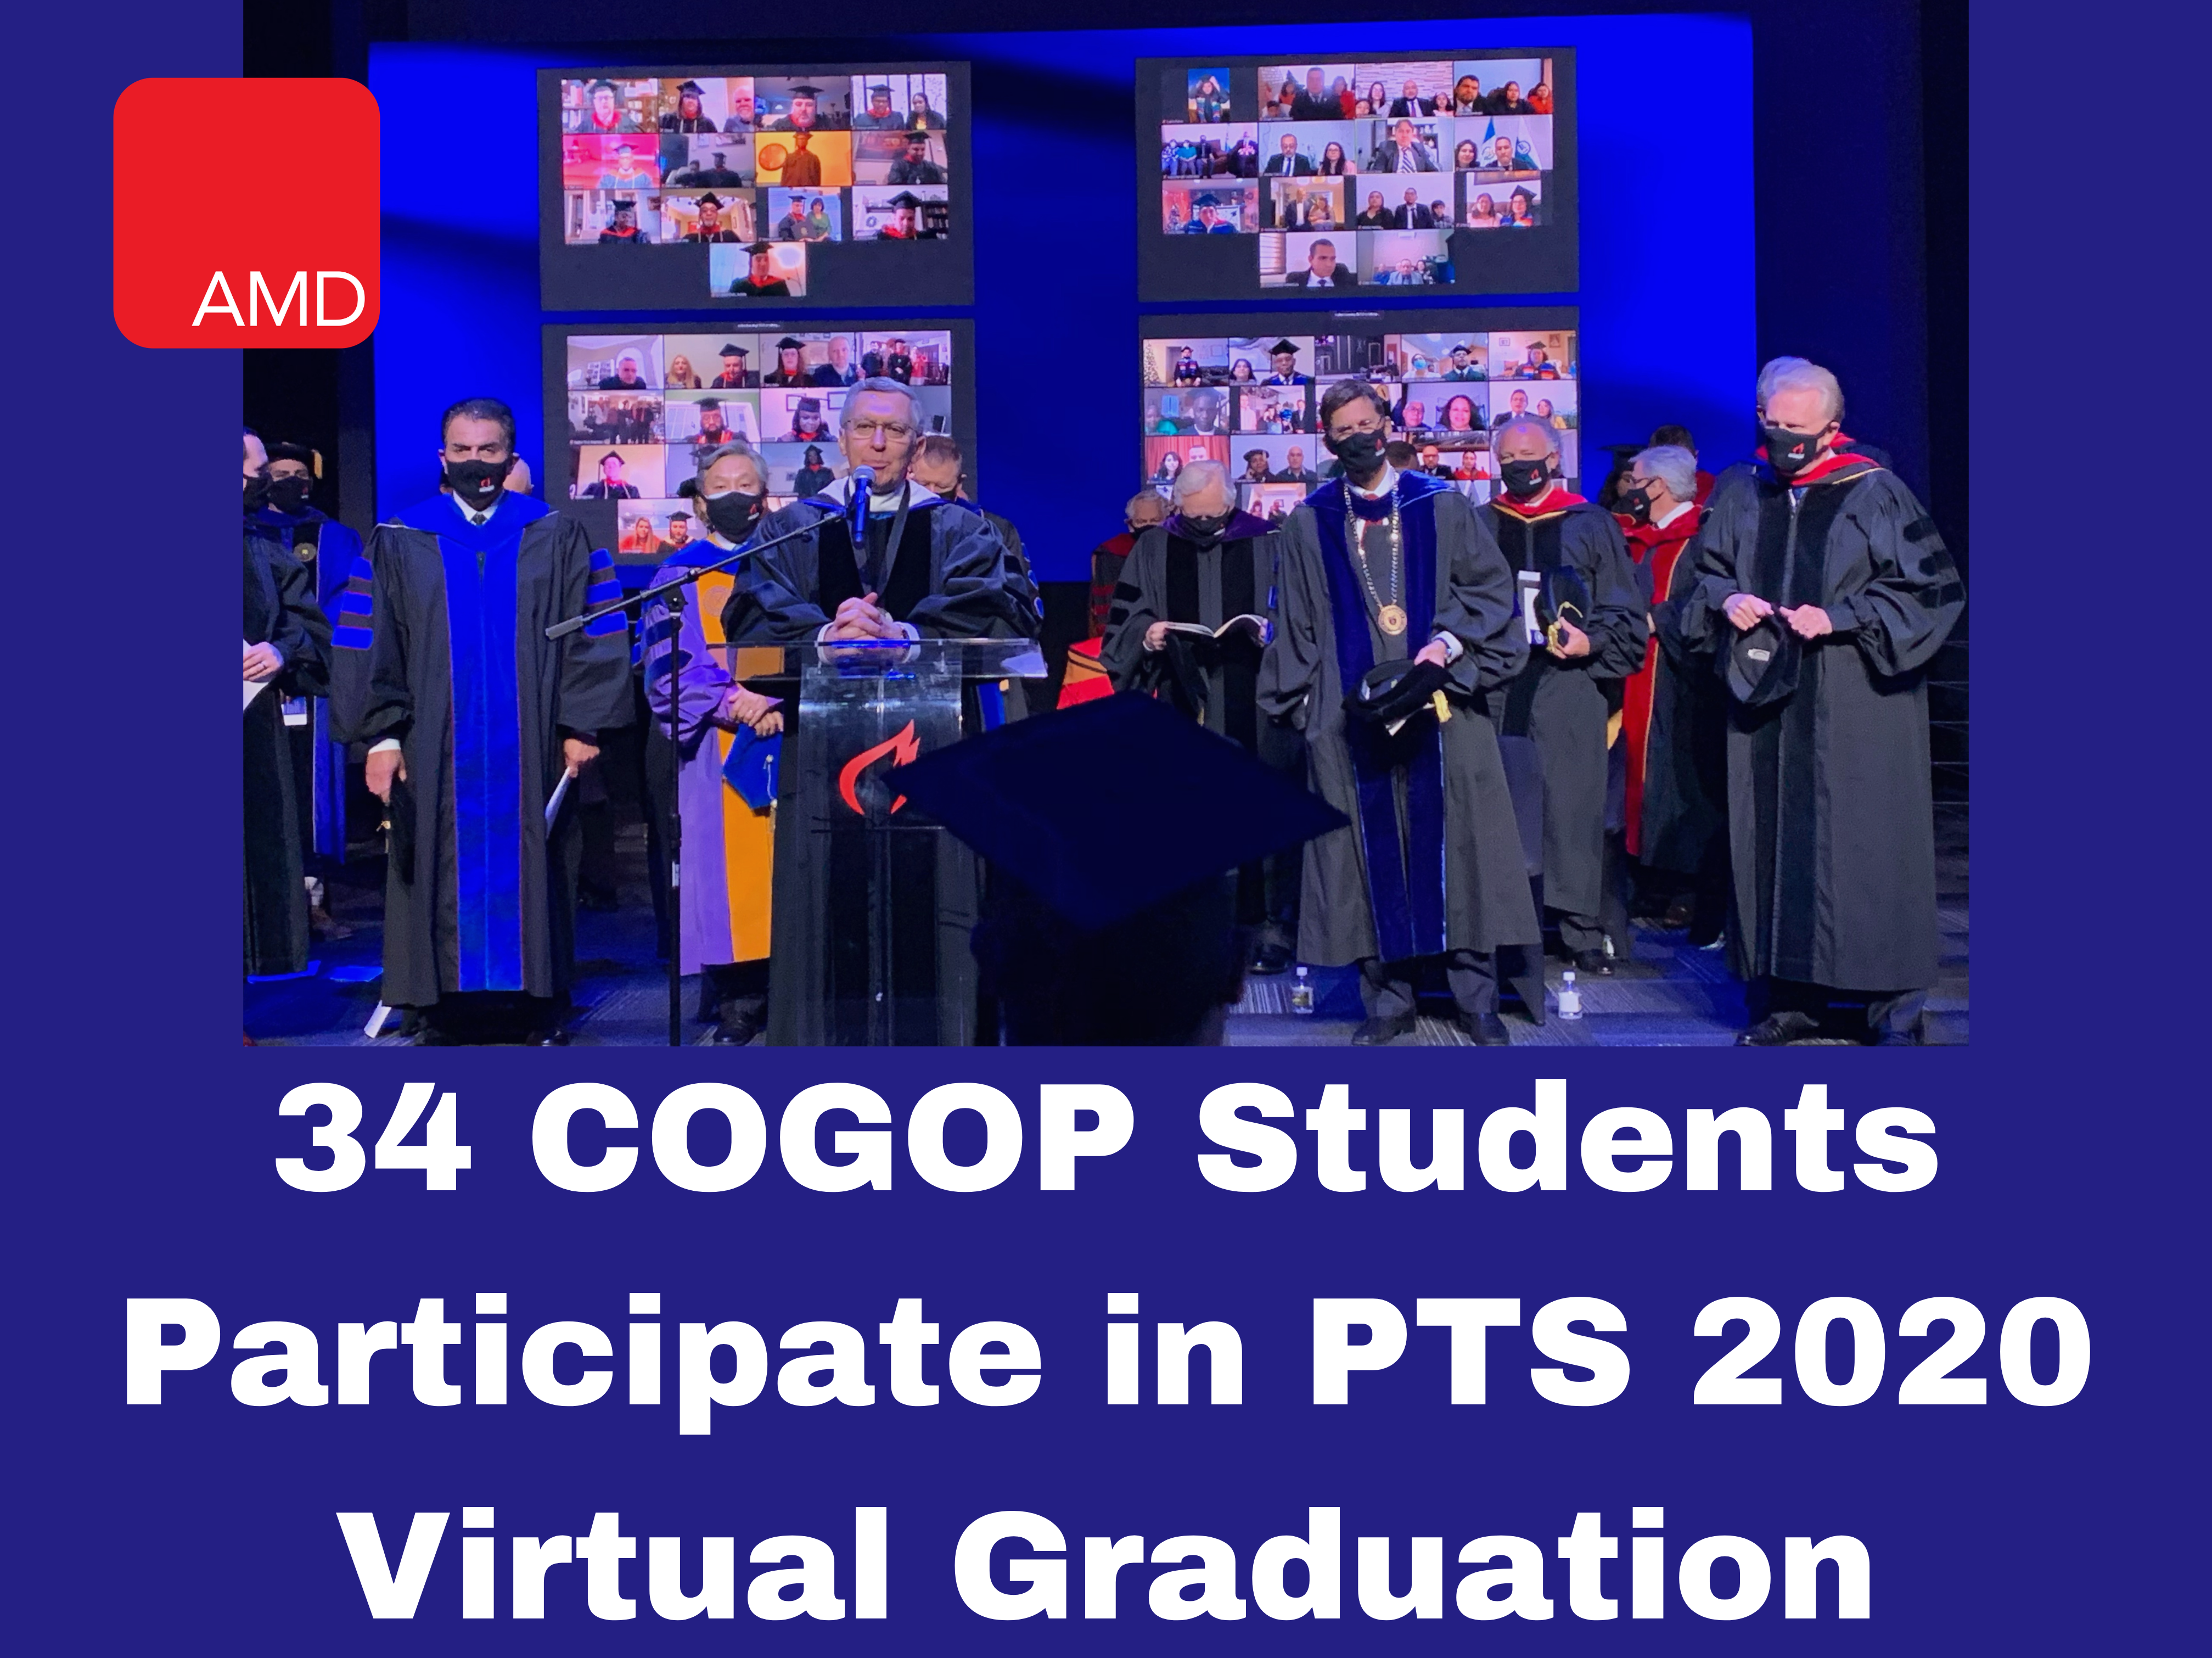 34 COGOP Students Participate in PTS 2020 Virtual Graduation